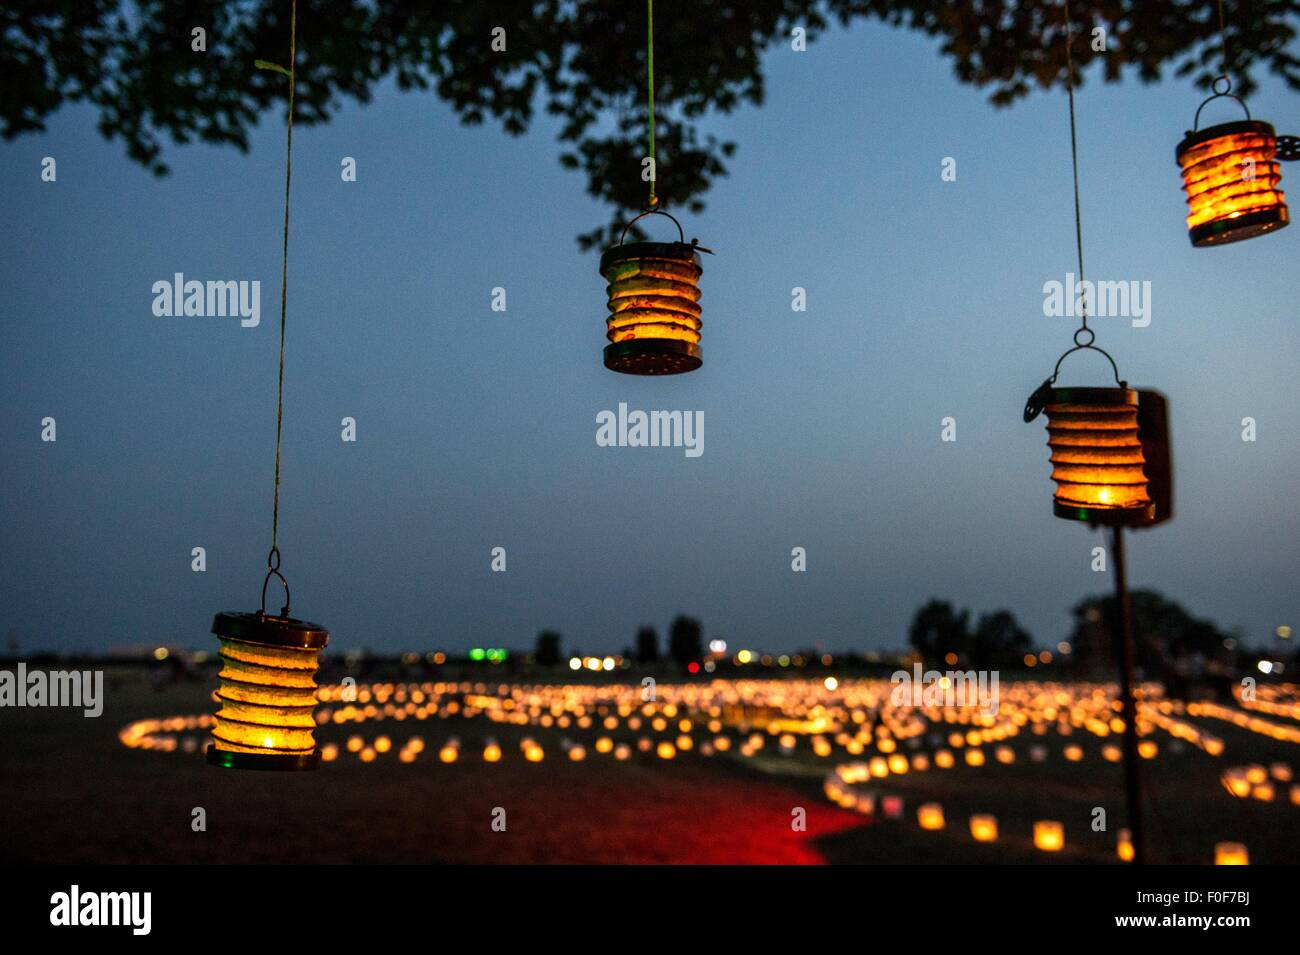 Lights hang in front of the entrance to the labyrinth of lights at Tempelhofer Feld in Berlin, Germany, 13 August - Stock Image